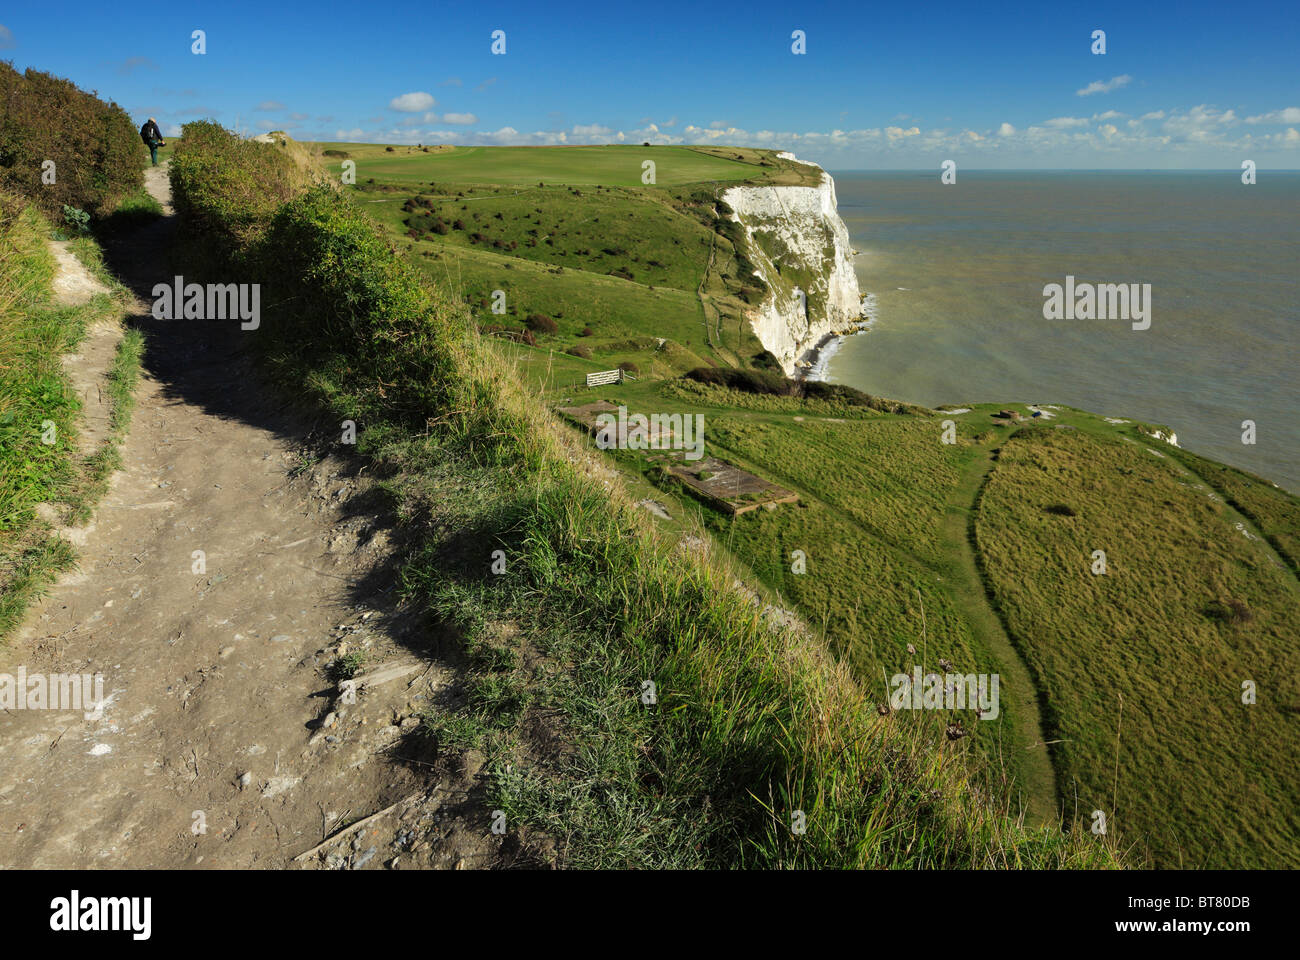 The White Cliffs of Dover. - Stock Image